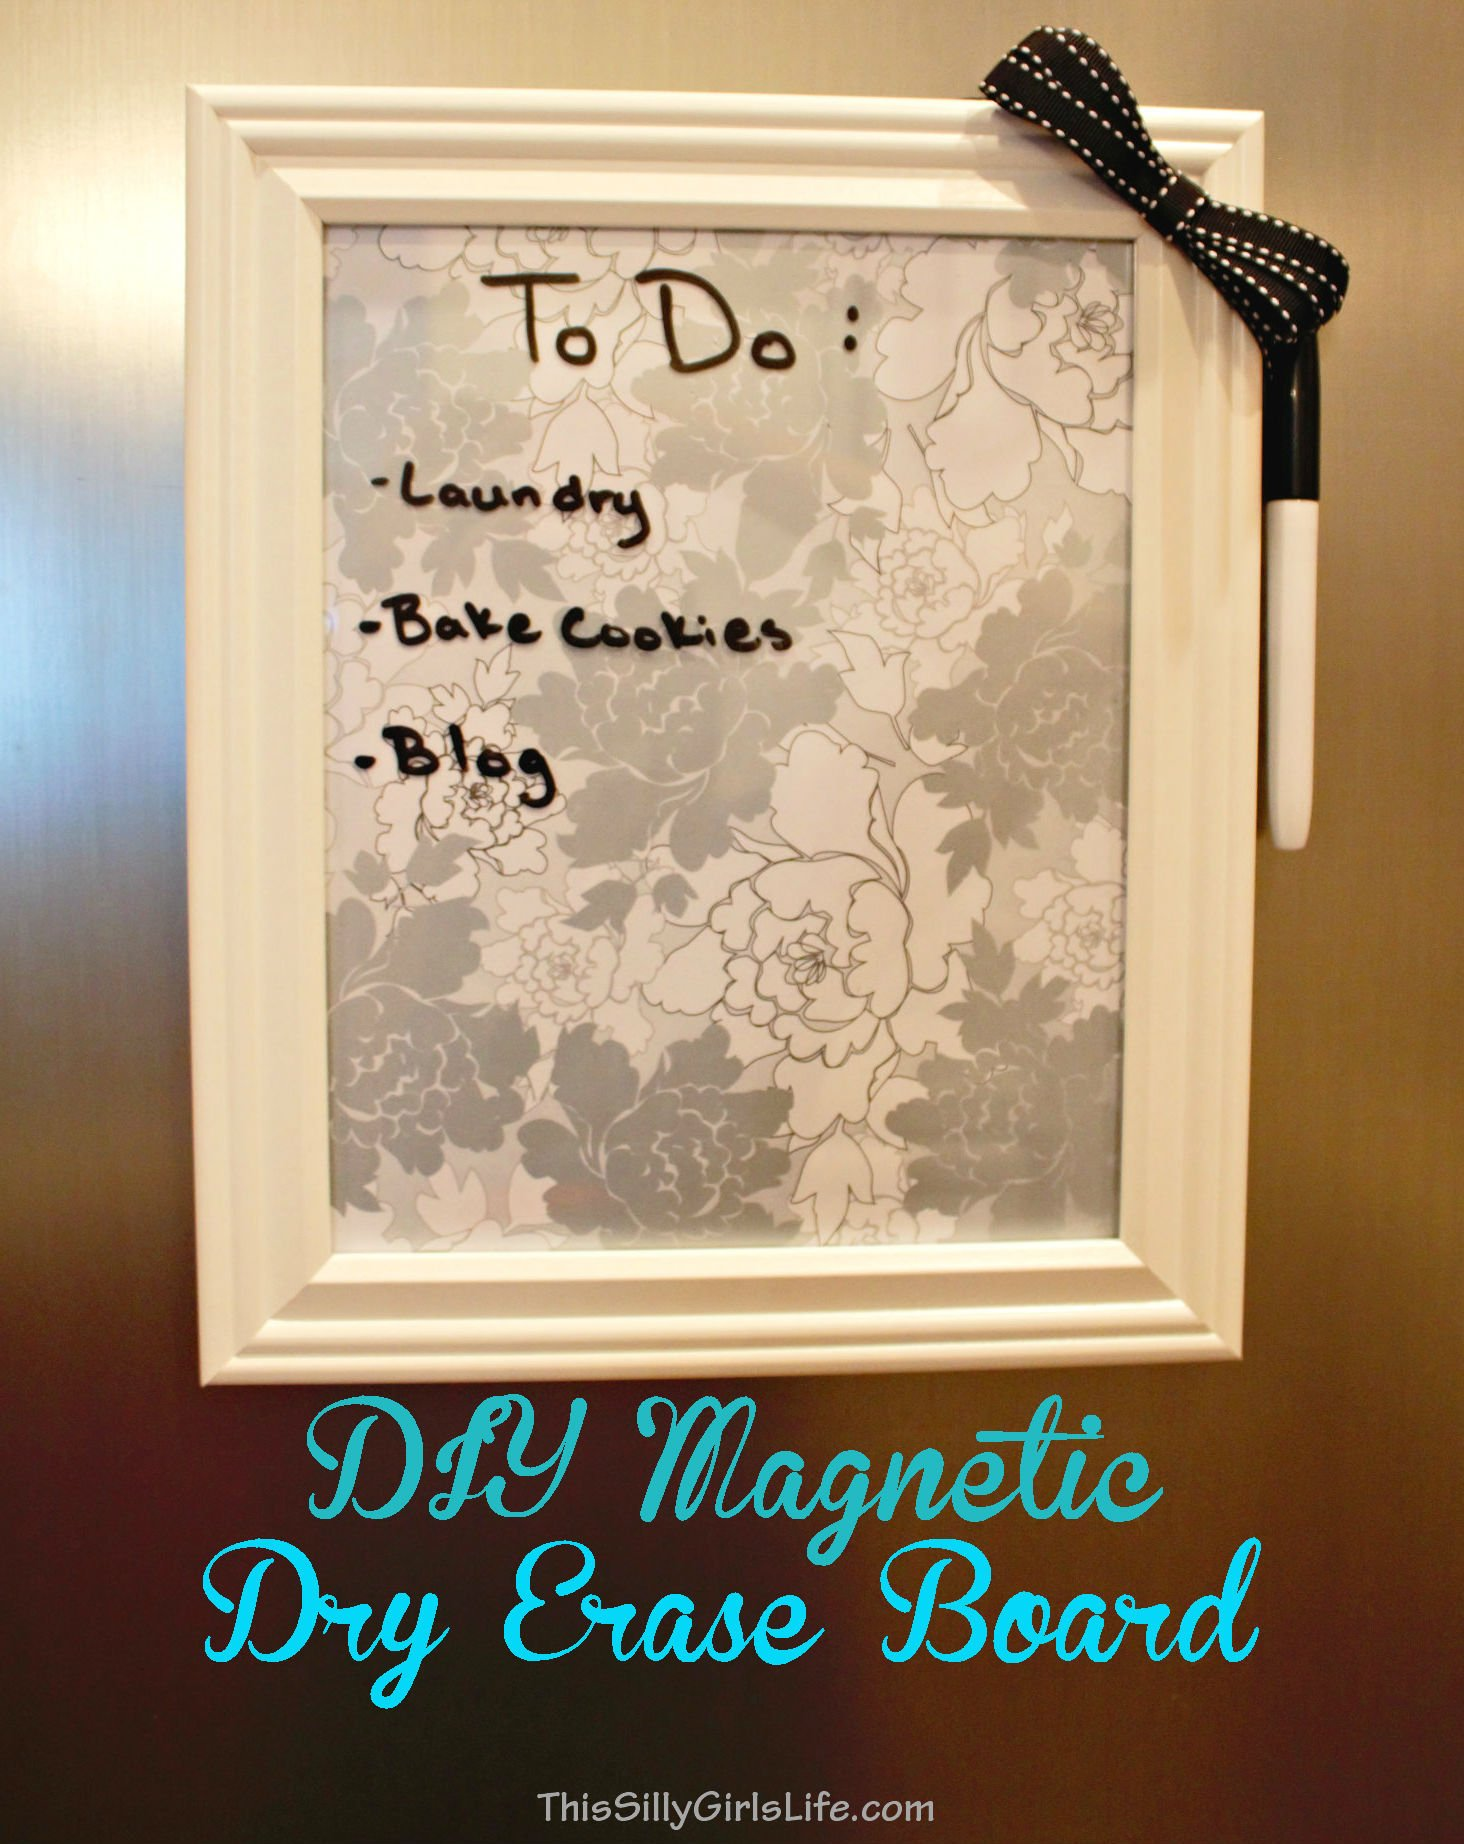 DIY Magnetic Dry Erase Board - This Silly Girlu0027s Kitchen